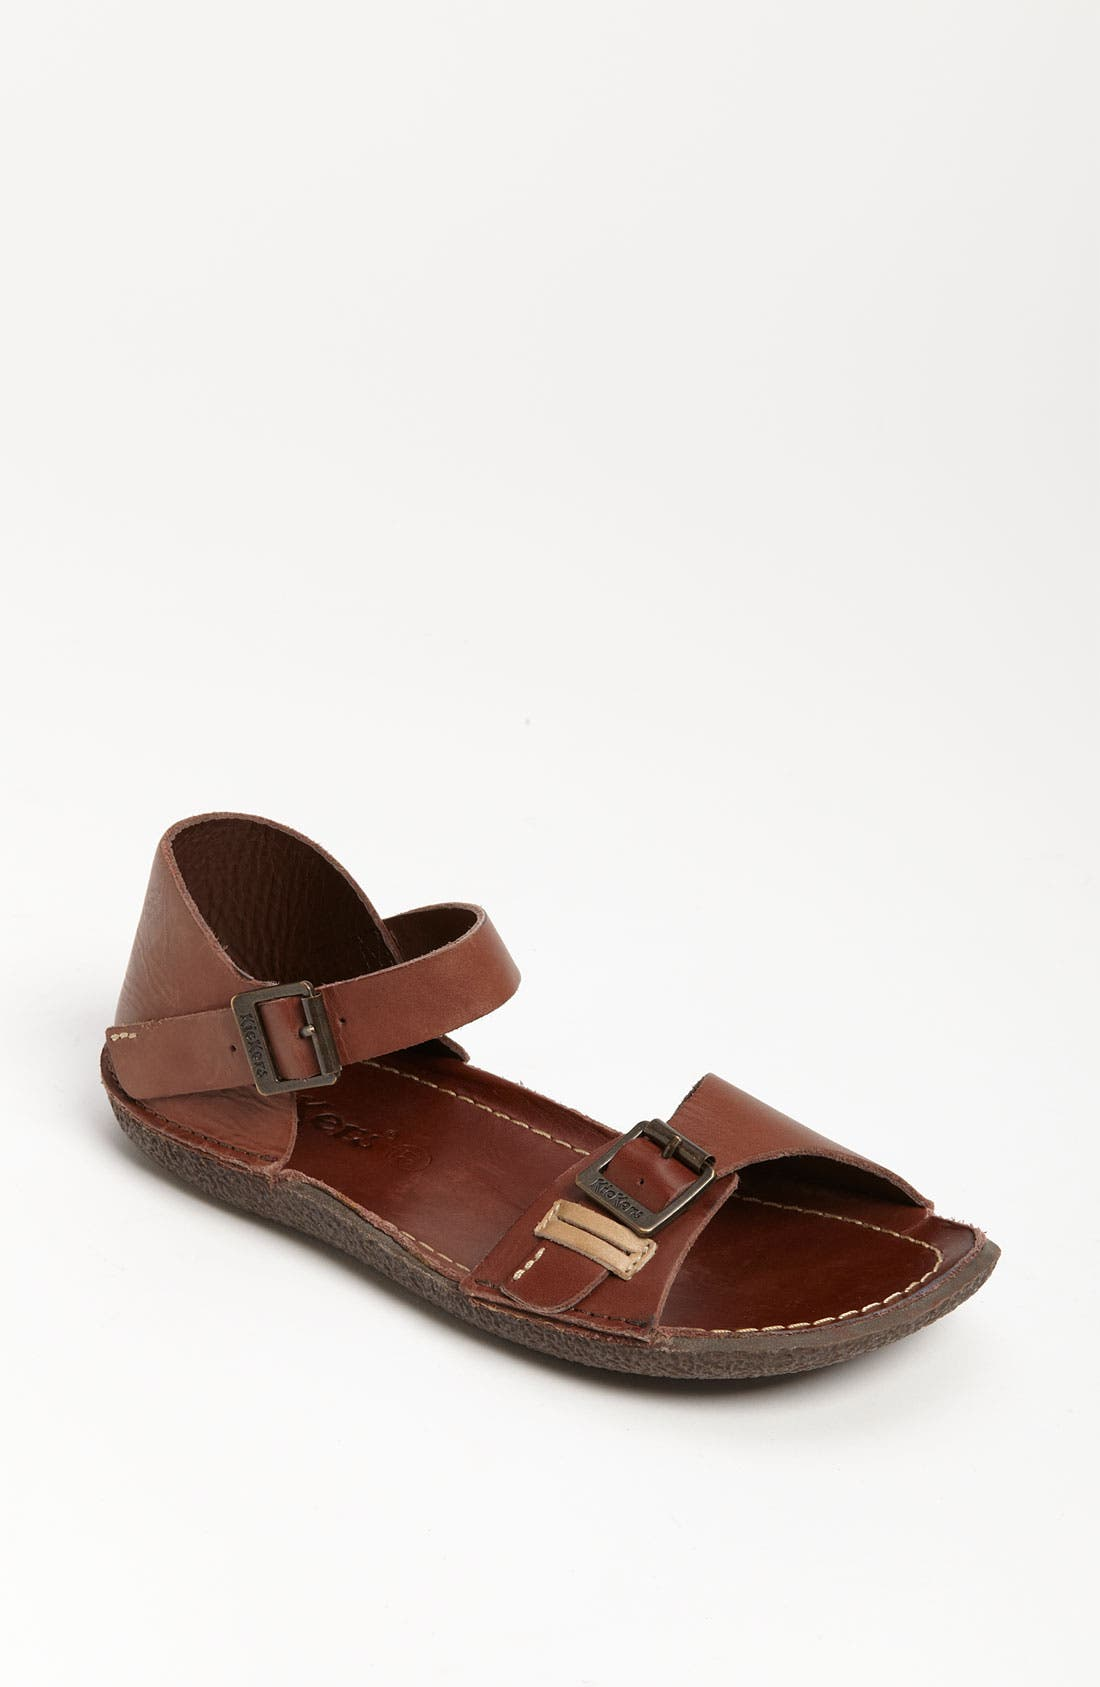 Alternate Image 1 Selected - Kickers 'Pastille' Sandal